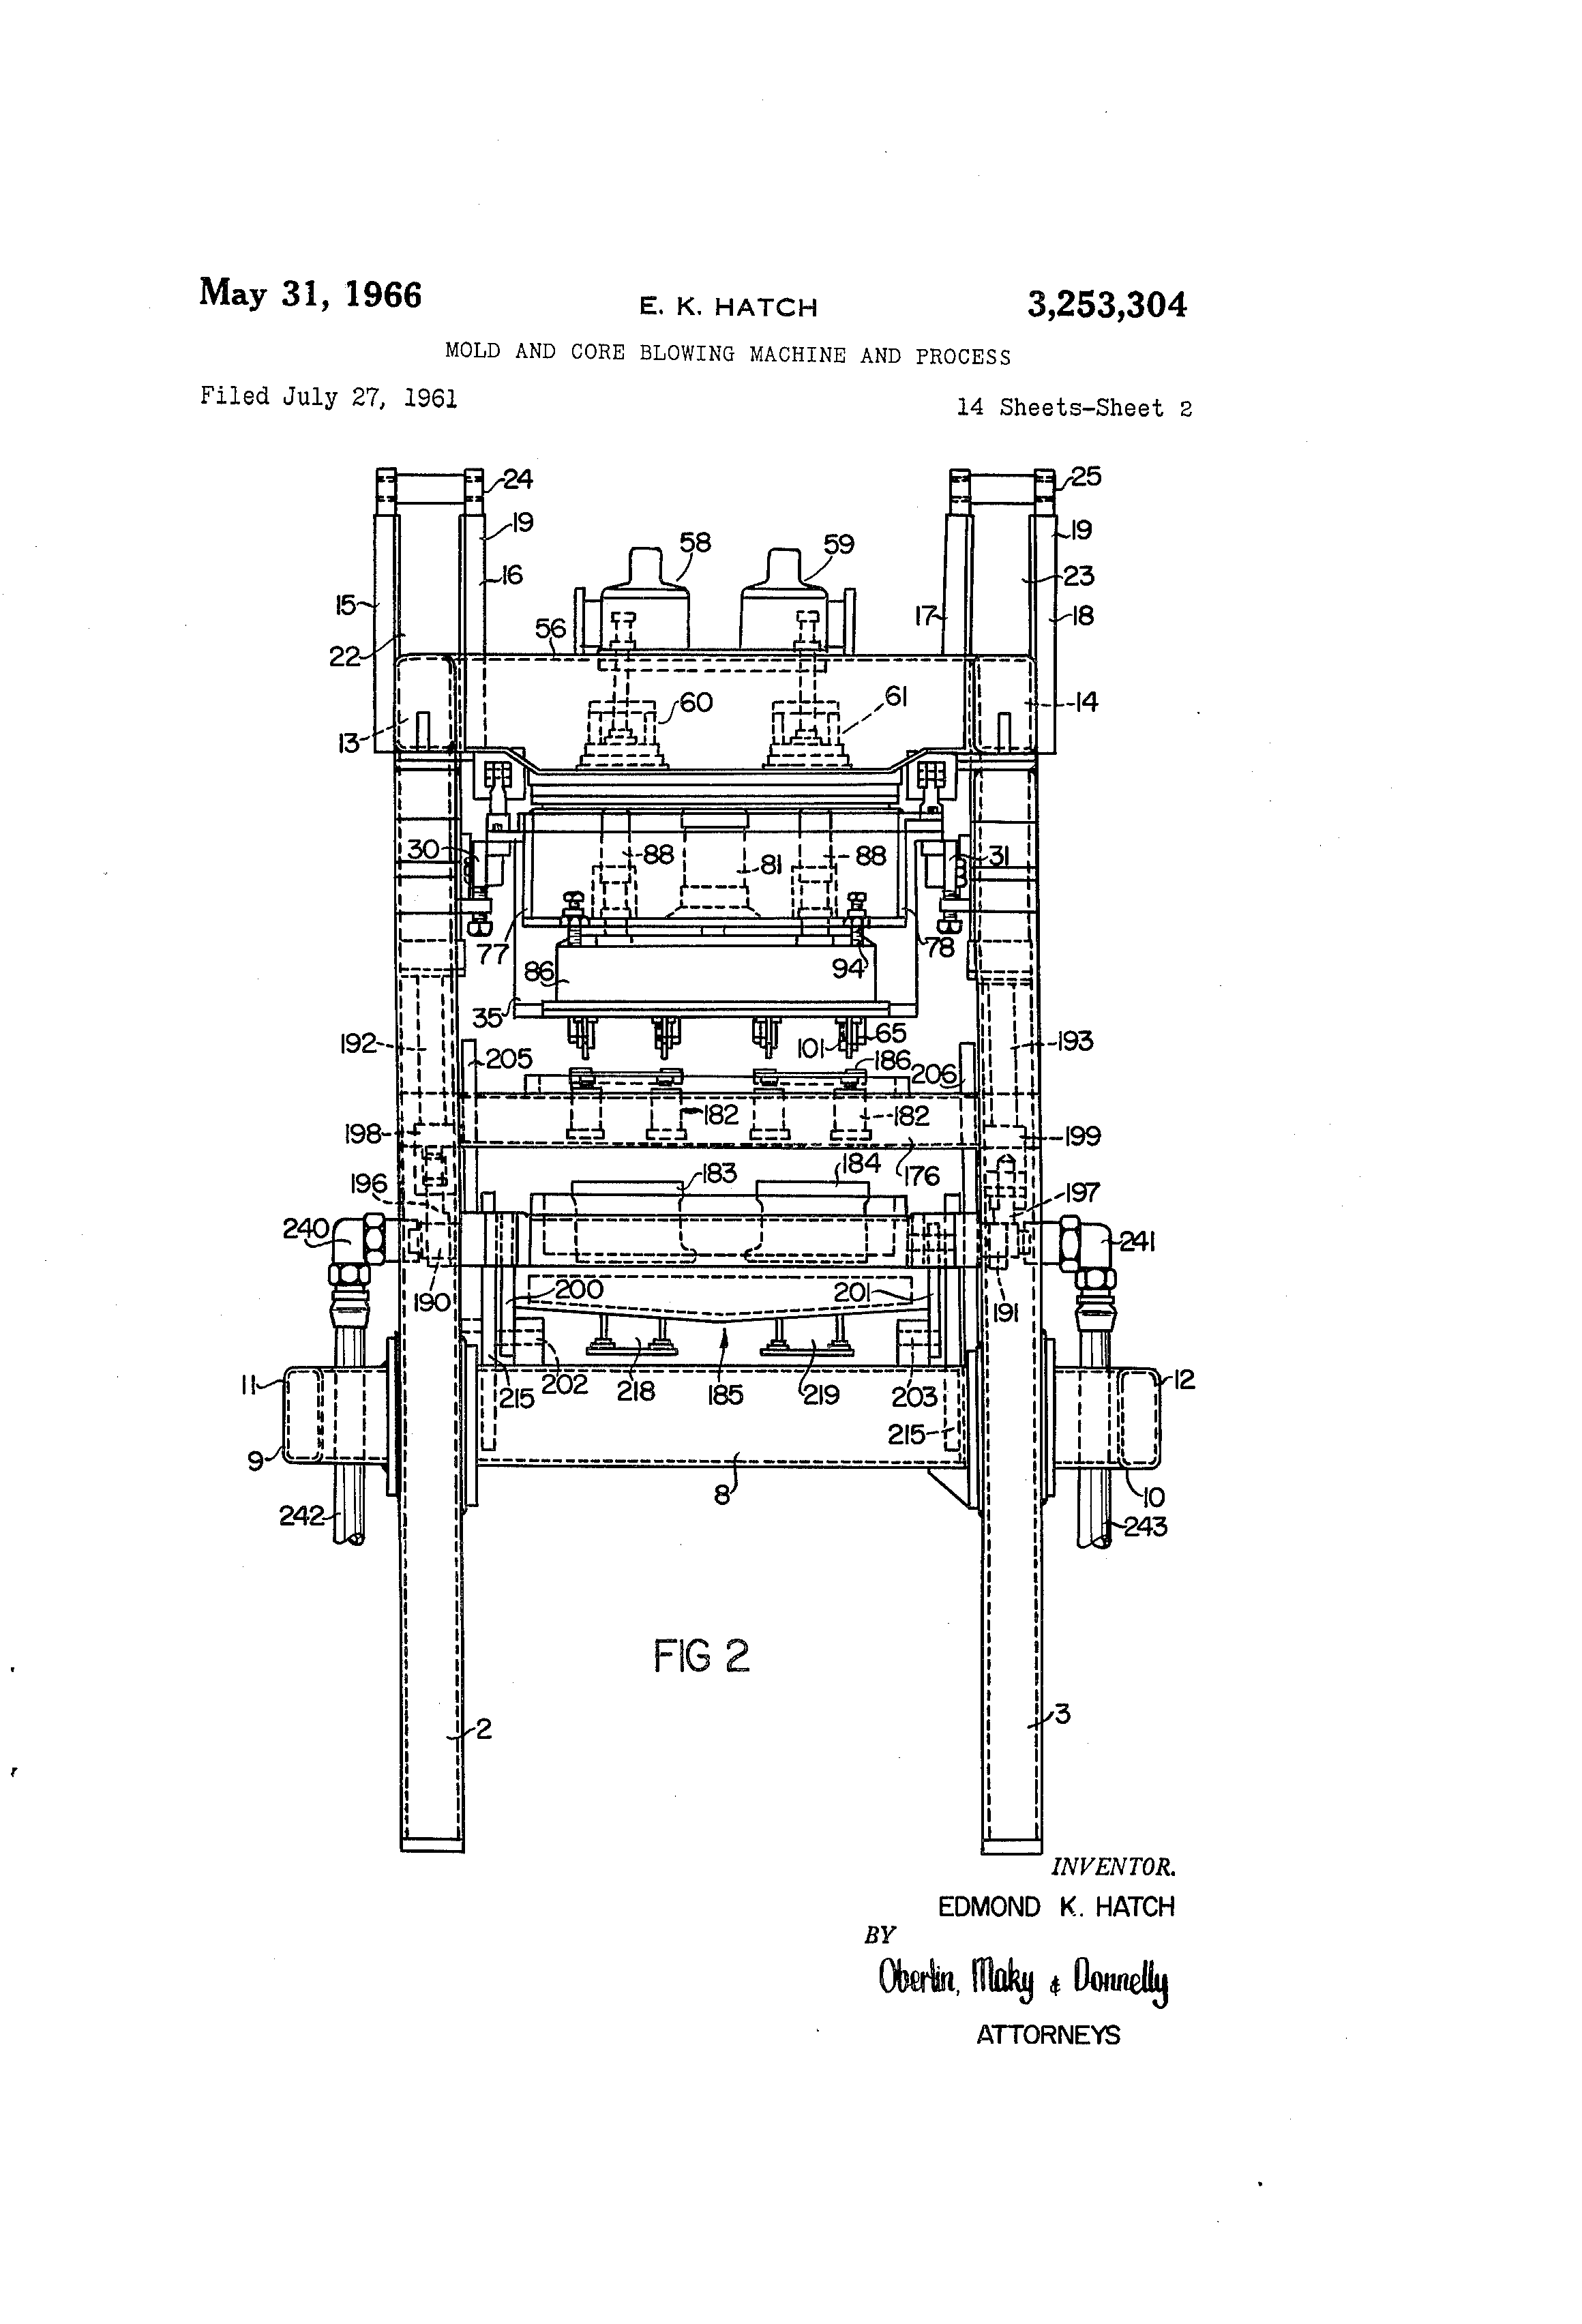 US3253304 1 patent us3253304 mold and core blowing machine and process  at creativeand.co